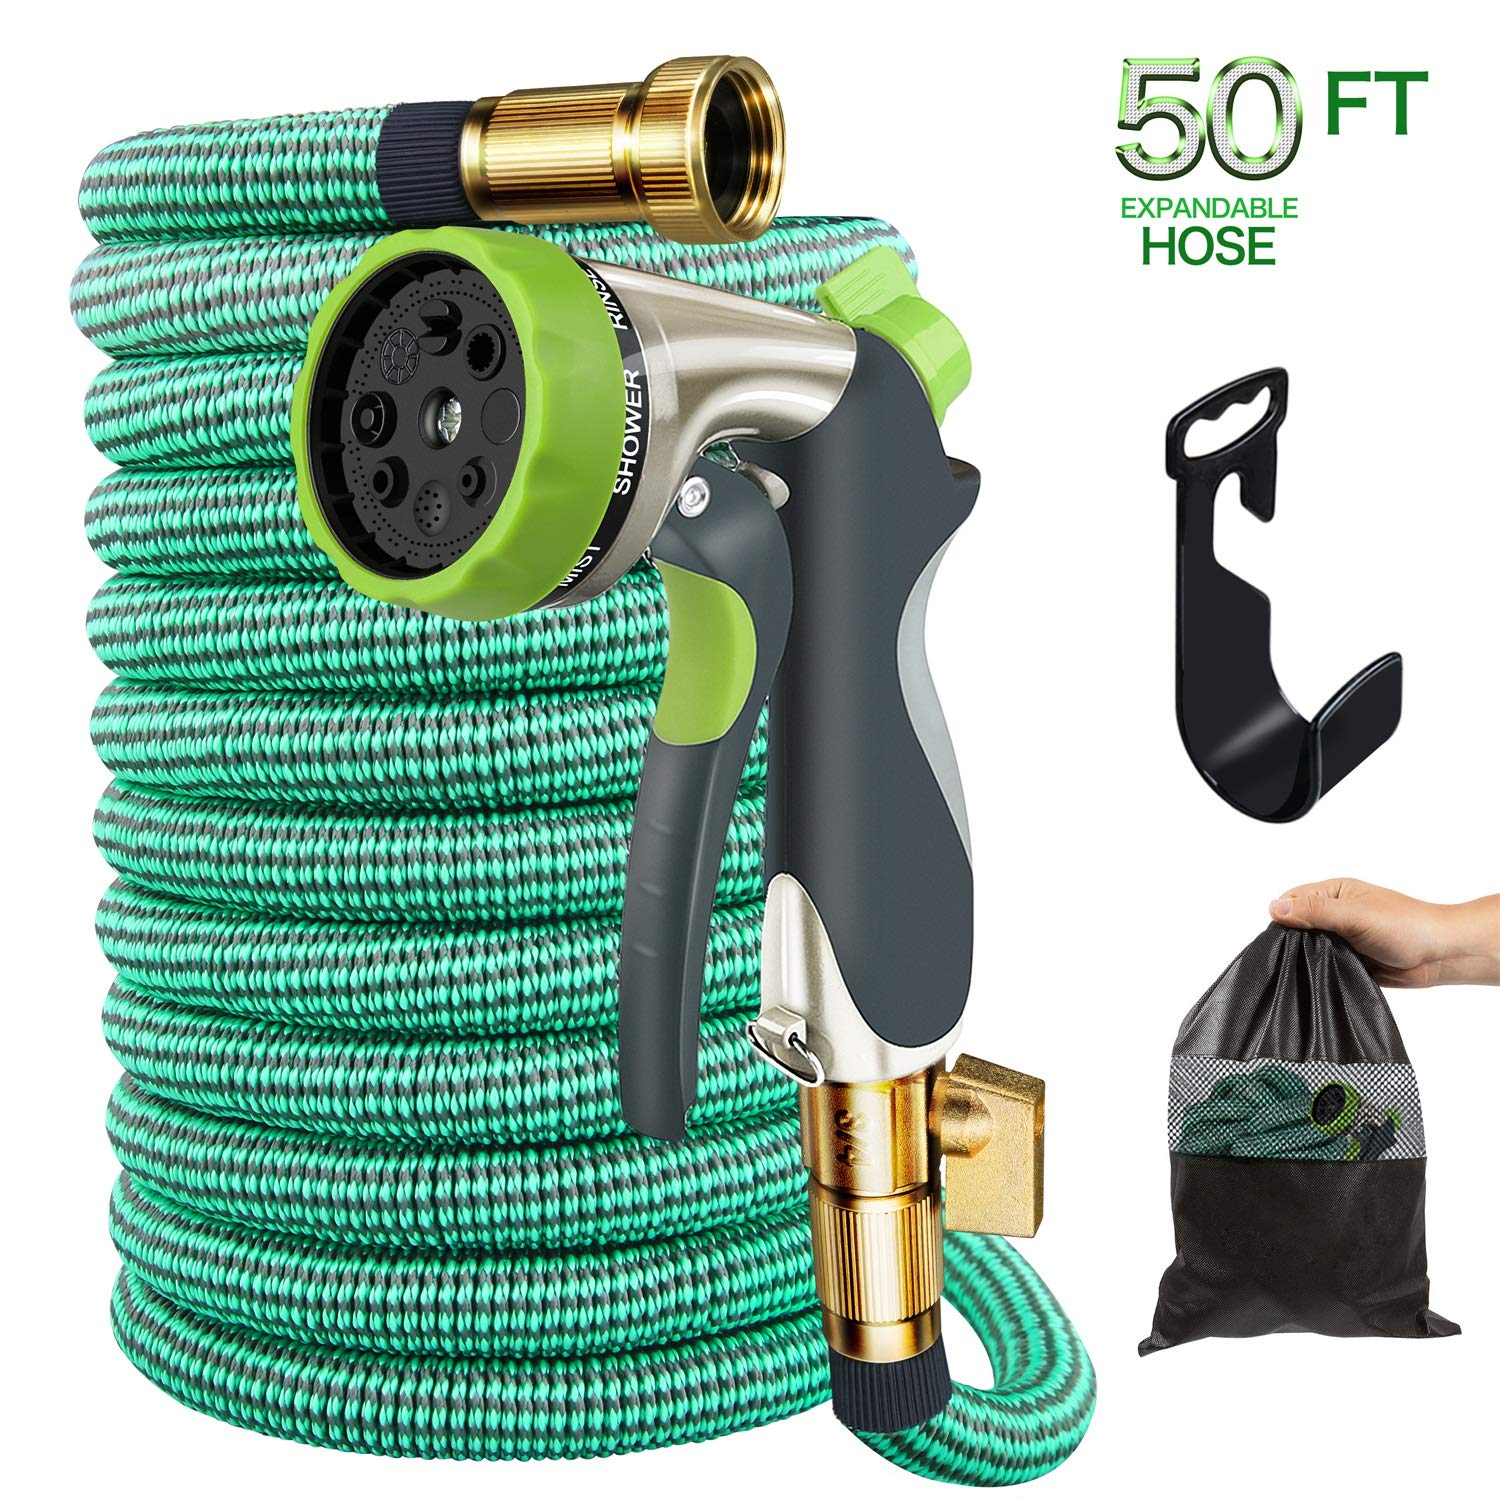 Begleri Garden Hose, 50ft Expandable Gardening Water Hoses Flexible Non-Kink Expanding Hose with Metal Spray Nozzle